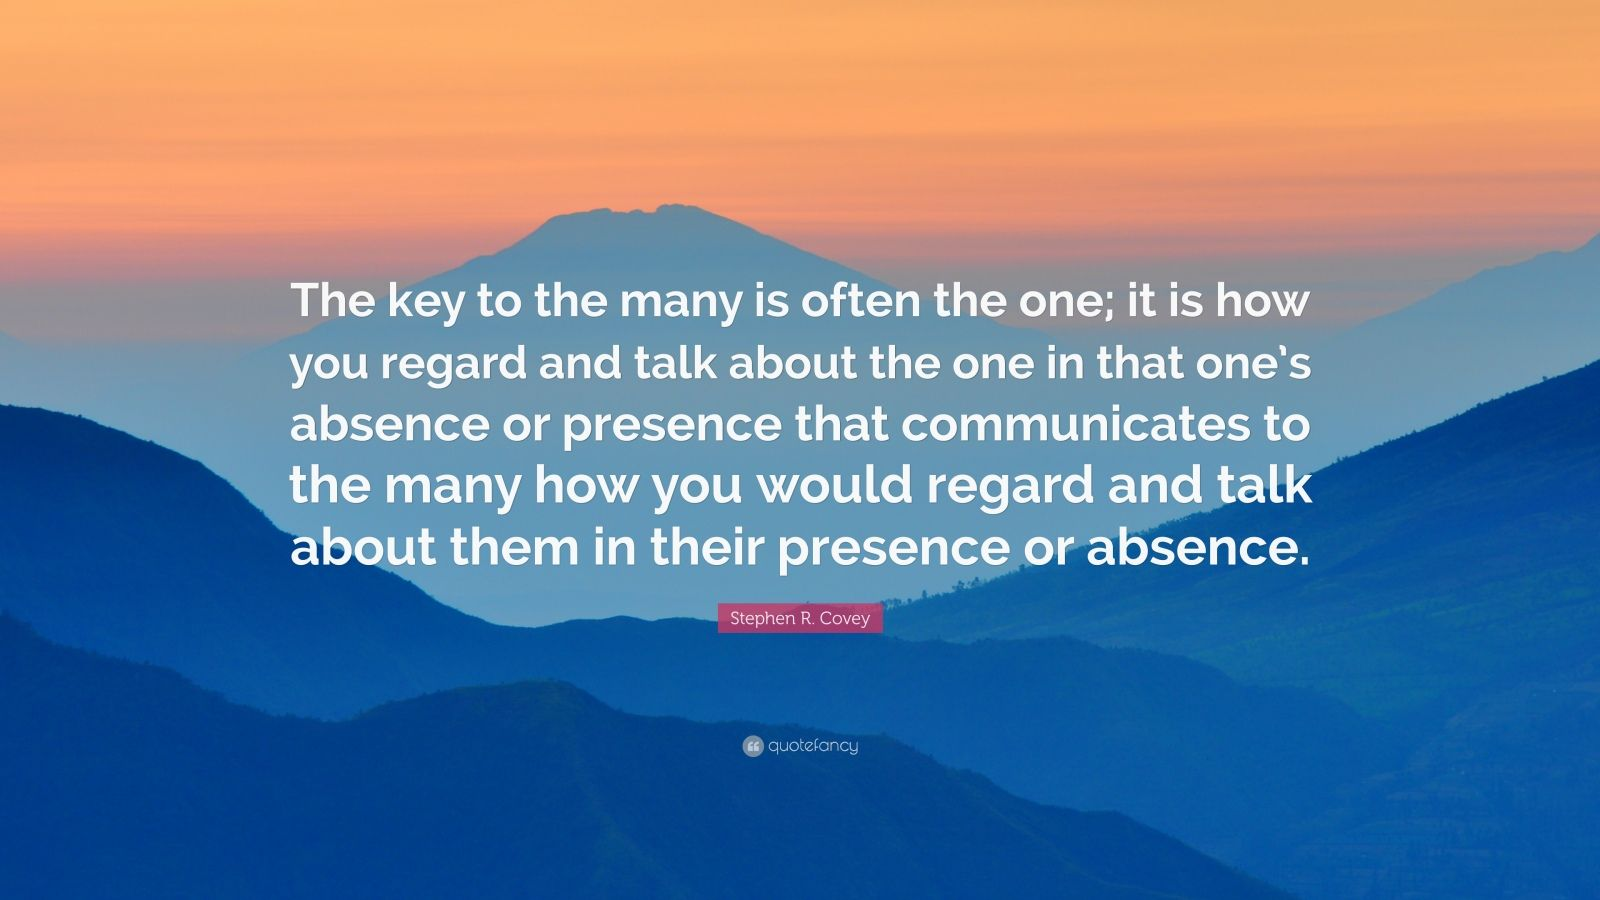 """Stephen R. Covey Quote: """"The key to the many is often the one; it is how you regard and talk about the one in that one's absence or presence that communicates to the many how you would regard and talk about them in their presence or absence."""""""